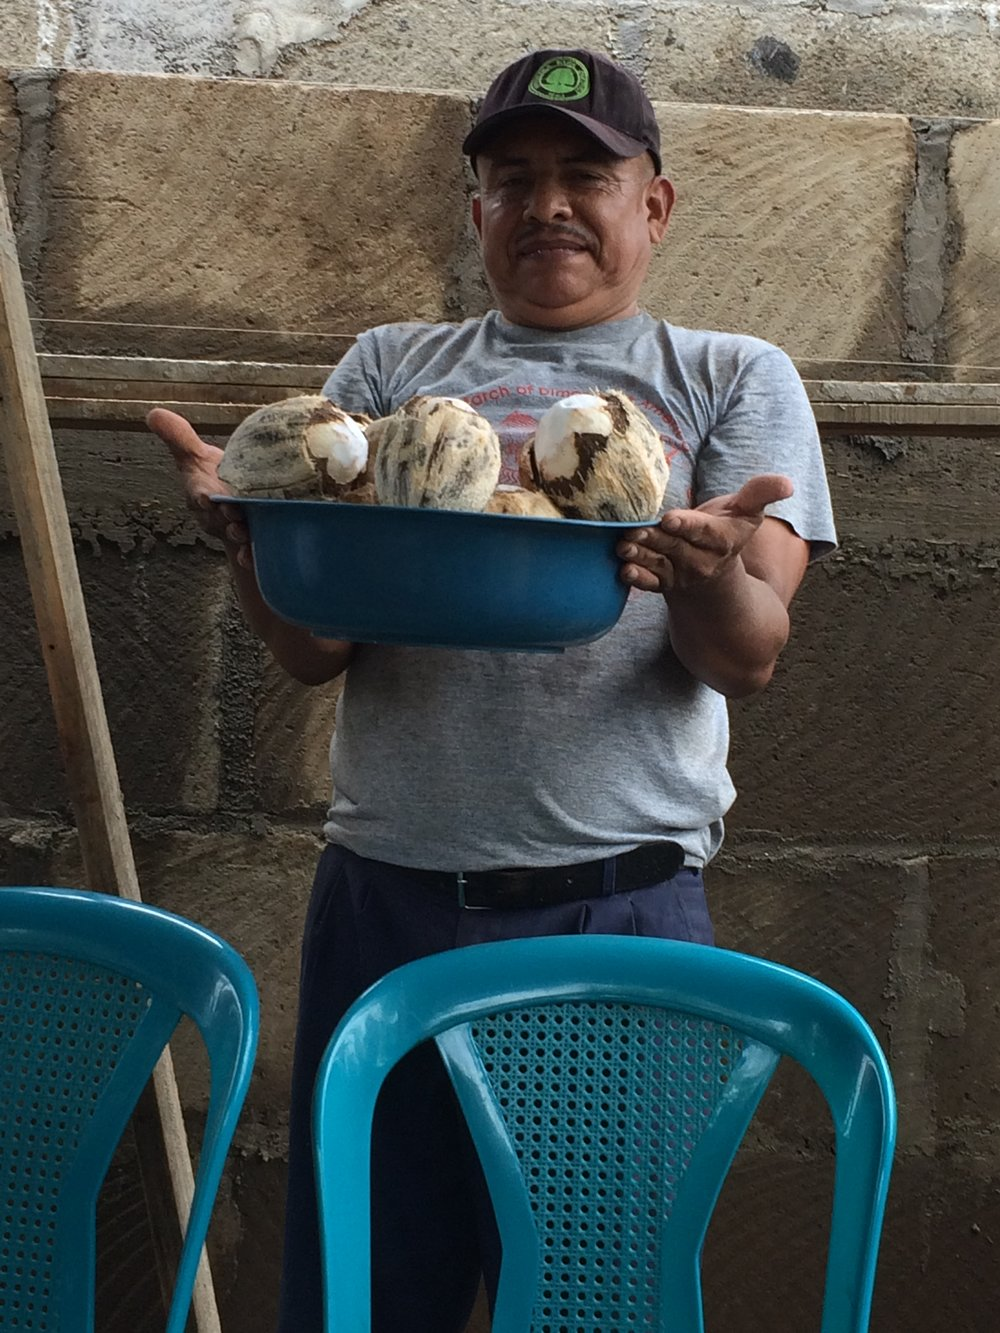 Pastor Pablo surprises us with fresh coconut water to refresh us!